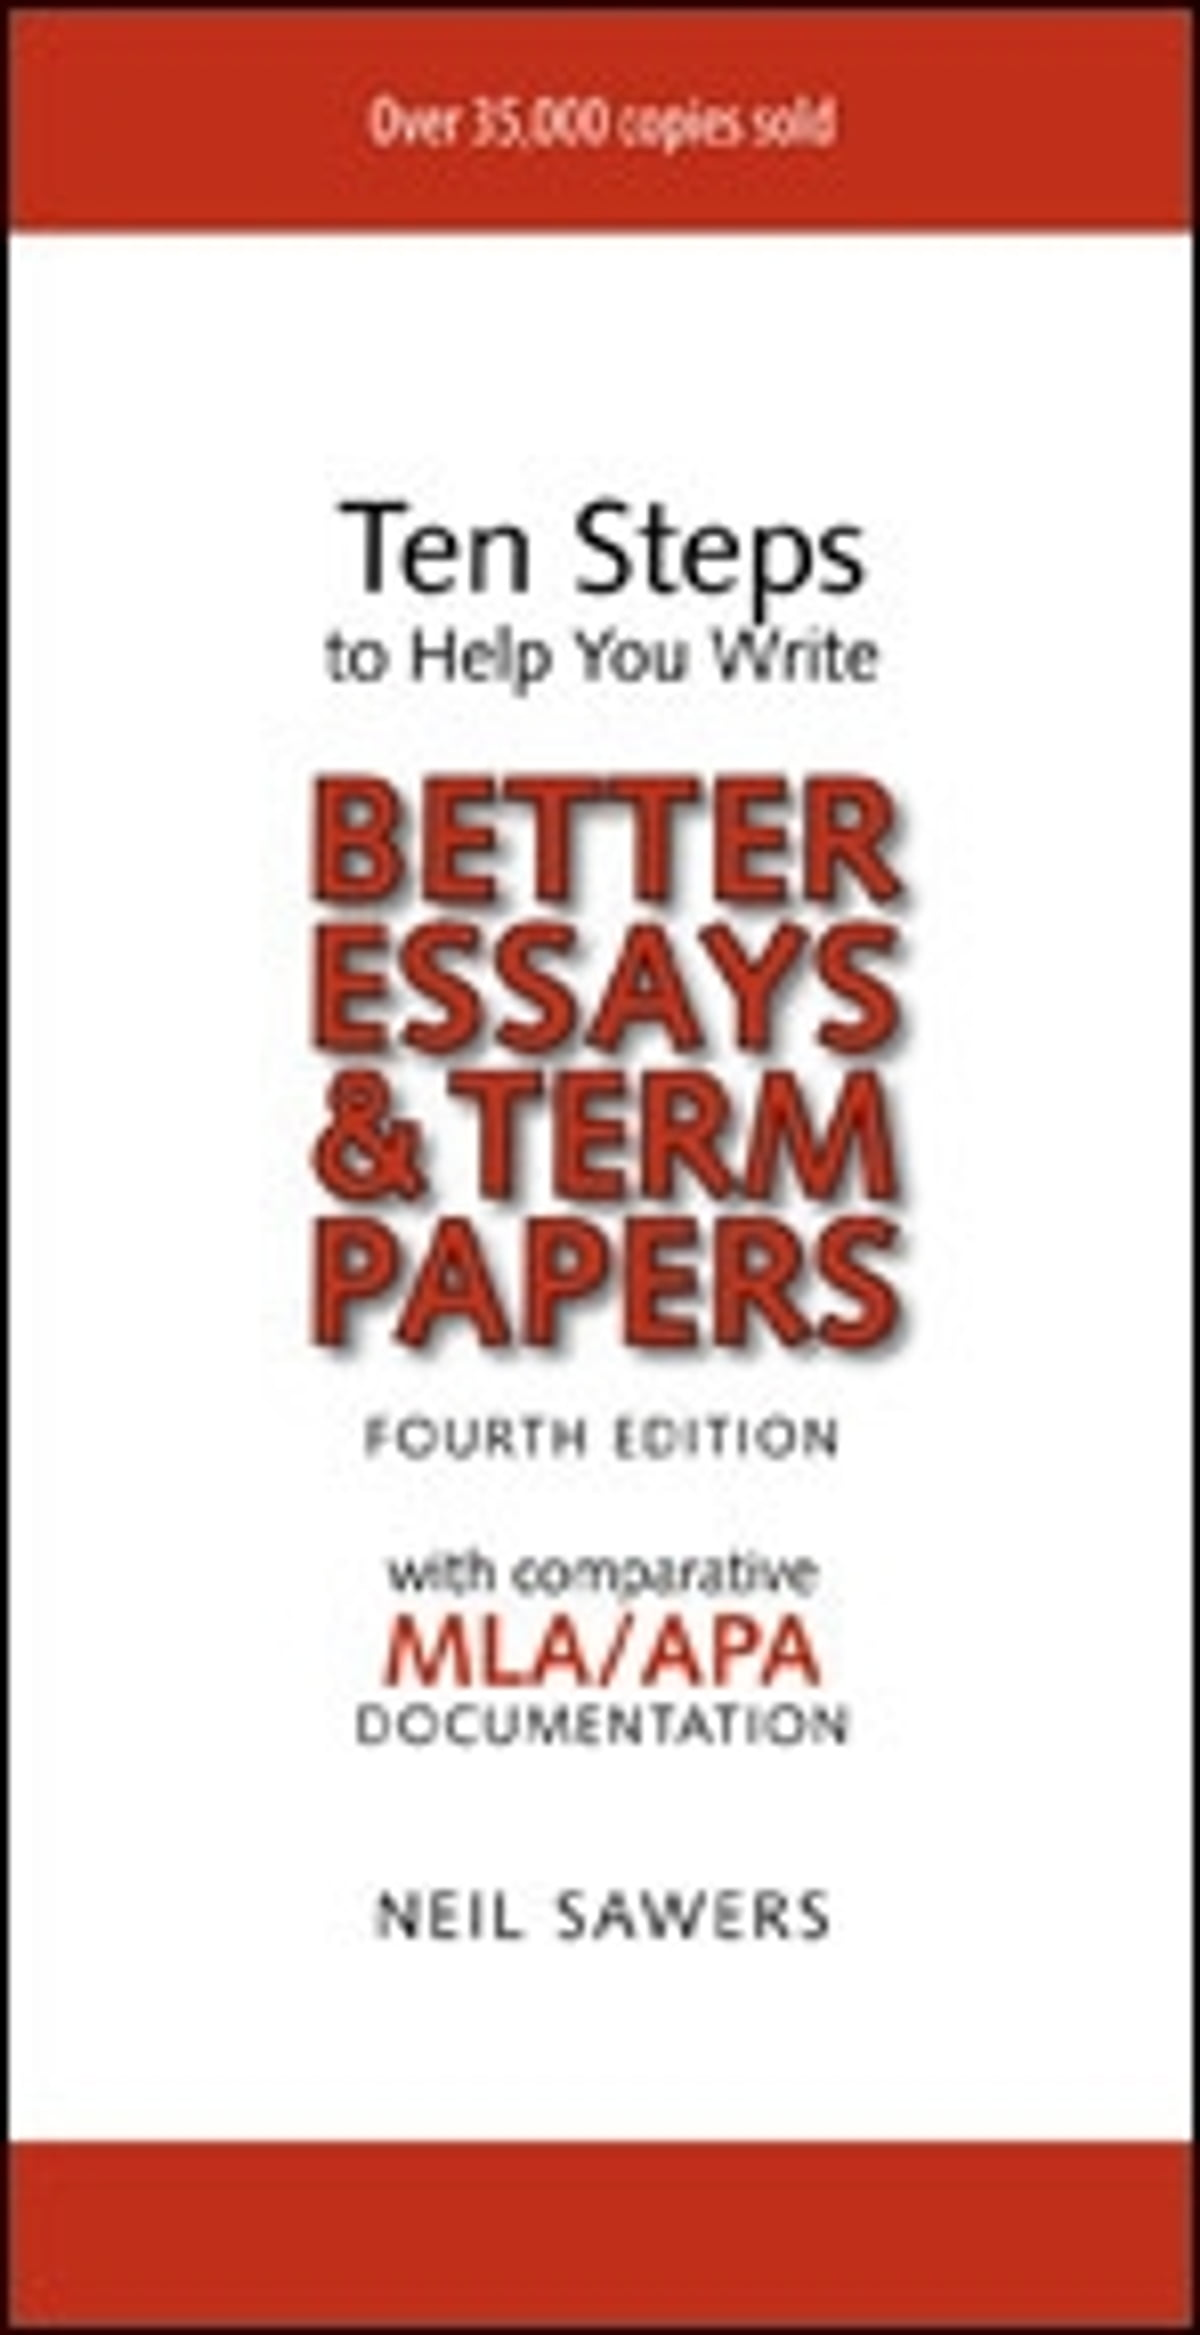 9th edition handbook mla papers research writer By joseph gibaldi - mla handbook for writers of research papers: 7th (seventh) edition i have been using the mla 8th edition and i have nothing but wonderful things to say about that new update.